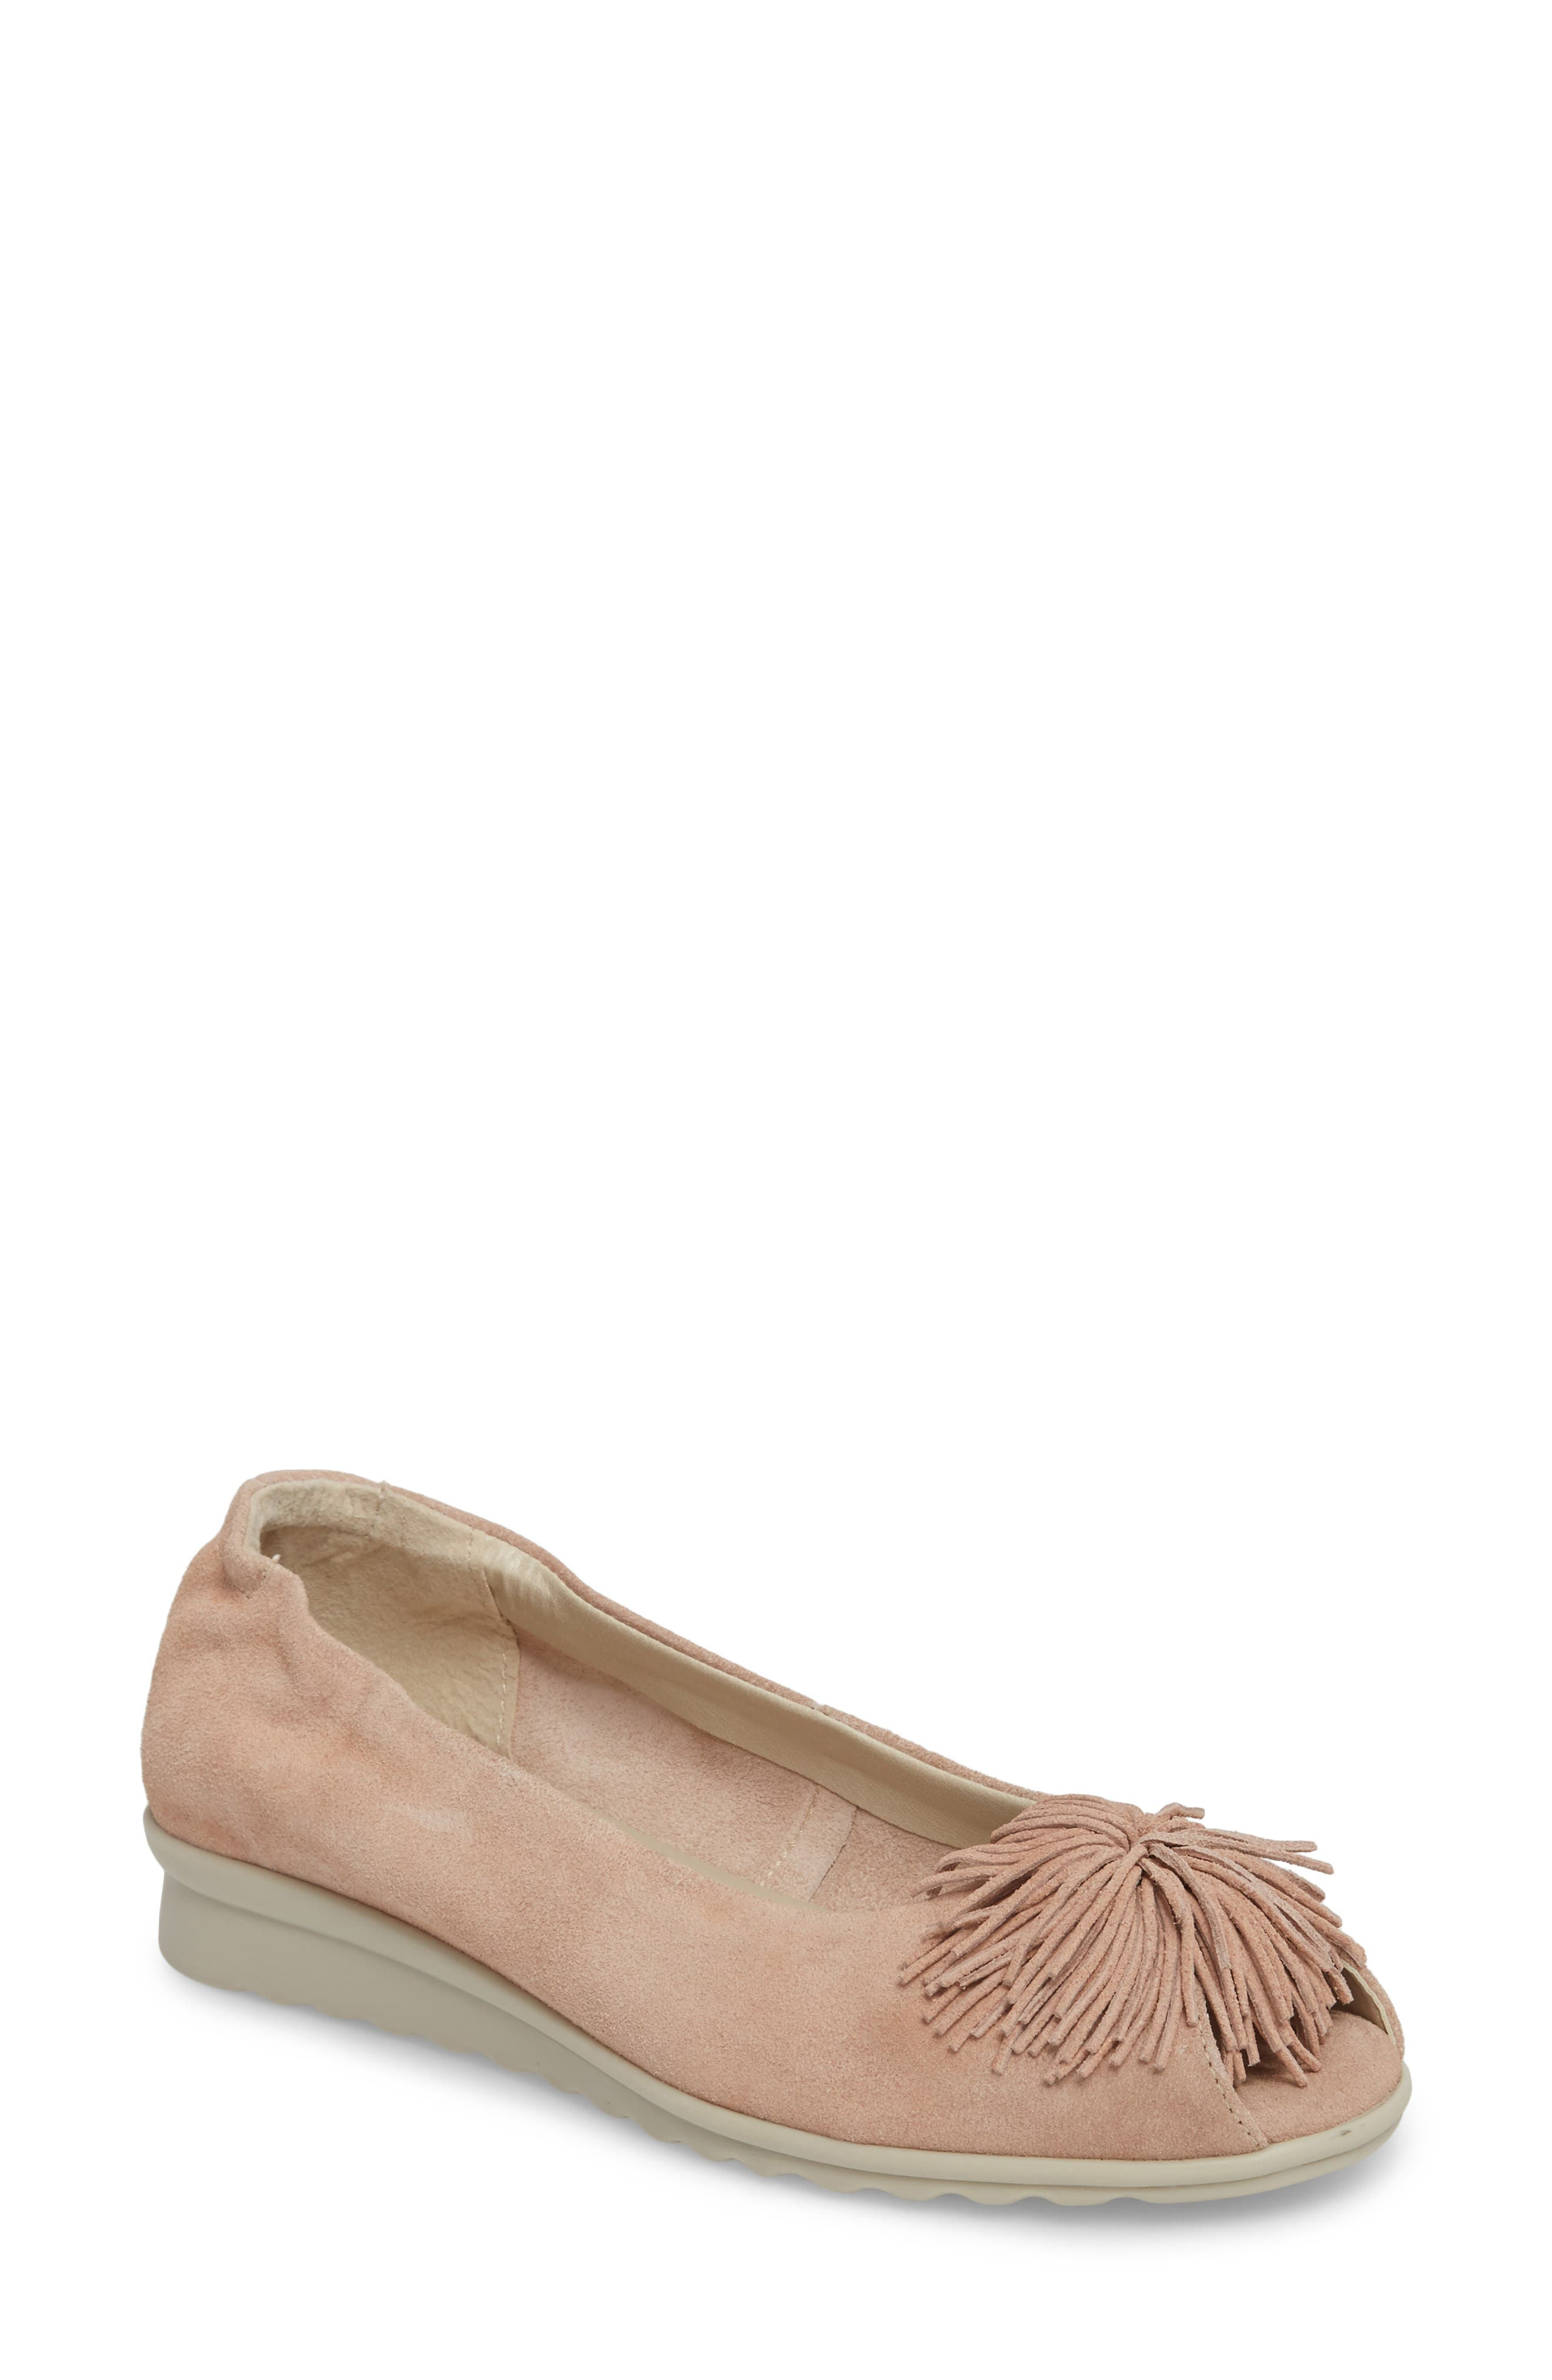 The Flexx Boco Loco Peeptoe Flat, Metallic